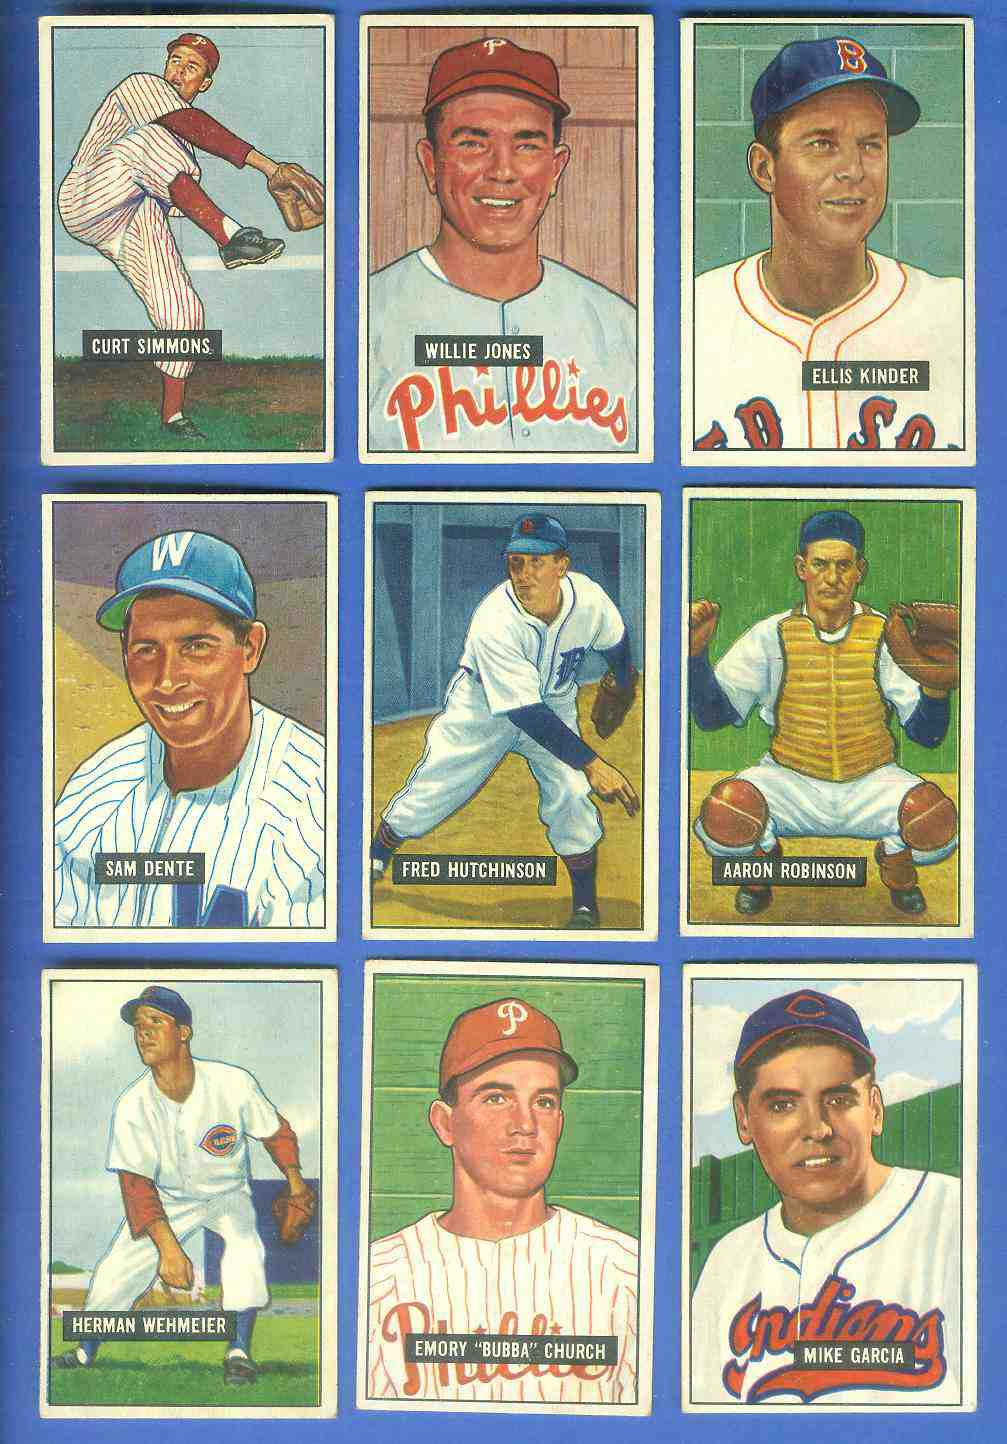 1951 Bowman #133 Sam Dente [#x] (Senators) Baseball cards value